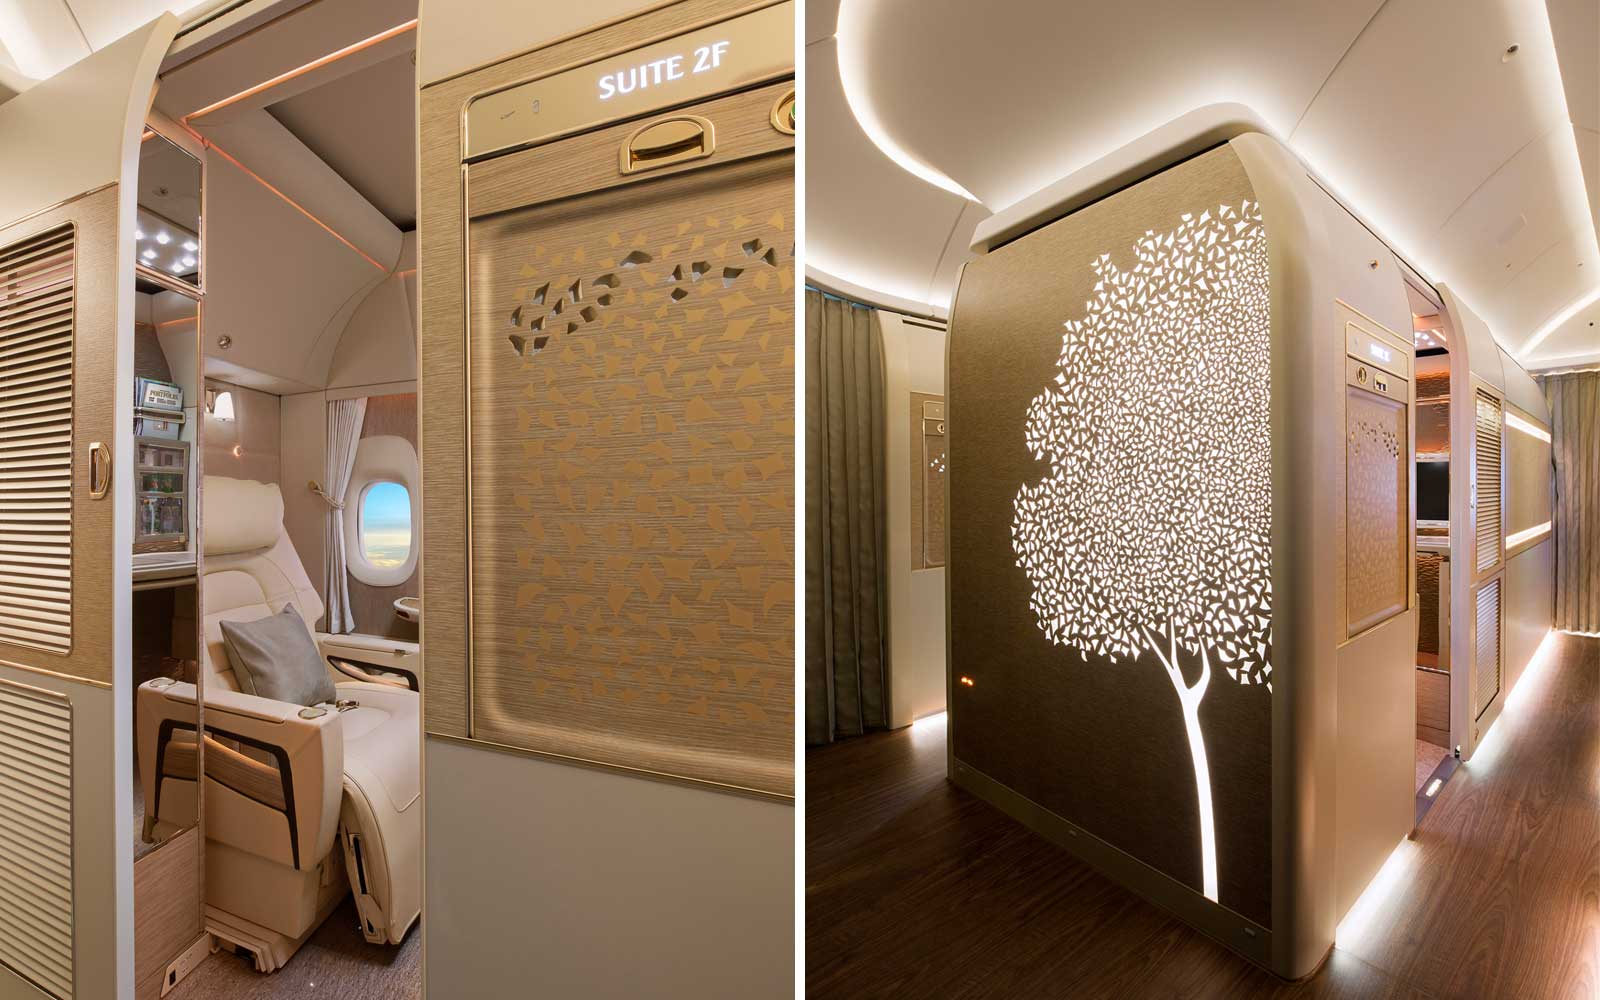 Emirates 777 New First Class Suites